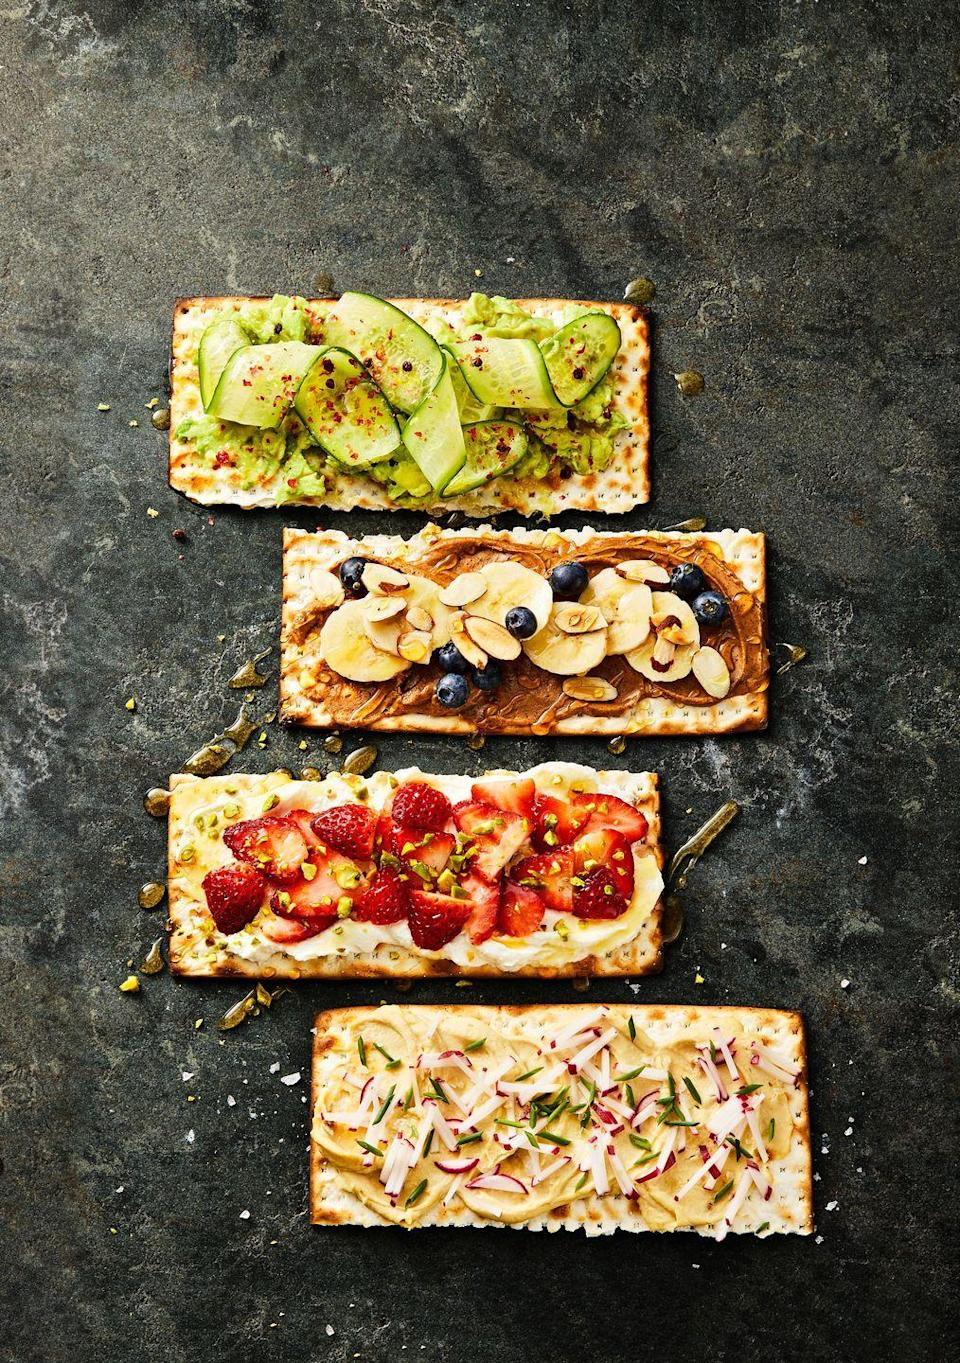 """<p>Amp up your snacking game all Passover long with these creative combos.</p><p><em><a href=""""https://www.goodhousekeeping.com/food-recipes/a35591339/matzo-toasts-recipe/"""" rel=""""nofollow noopener"""" target=""""_blank"""" data-ylk=""""slk:Get the recipe for Matzo Toasts »"""" class=""""link rapid-noclick-resp"""">Get the recipe for Matzo Toasts »</a></em></p>"""